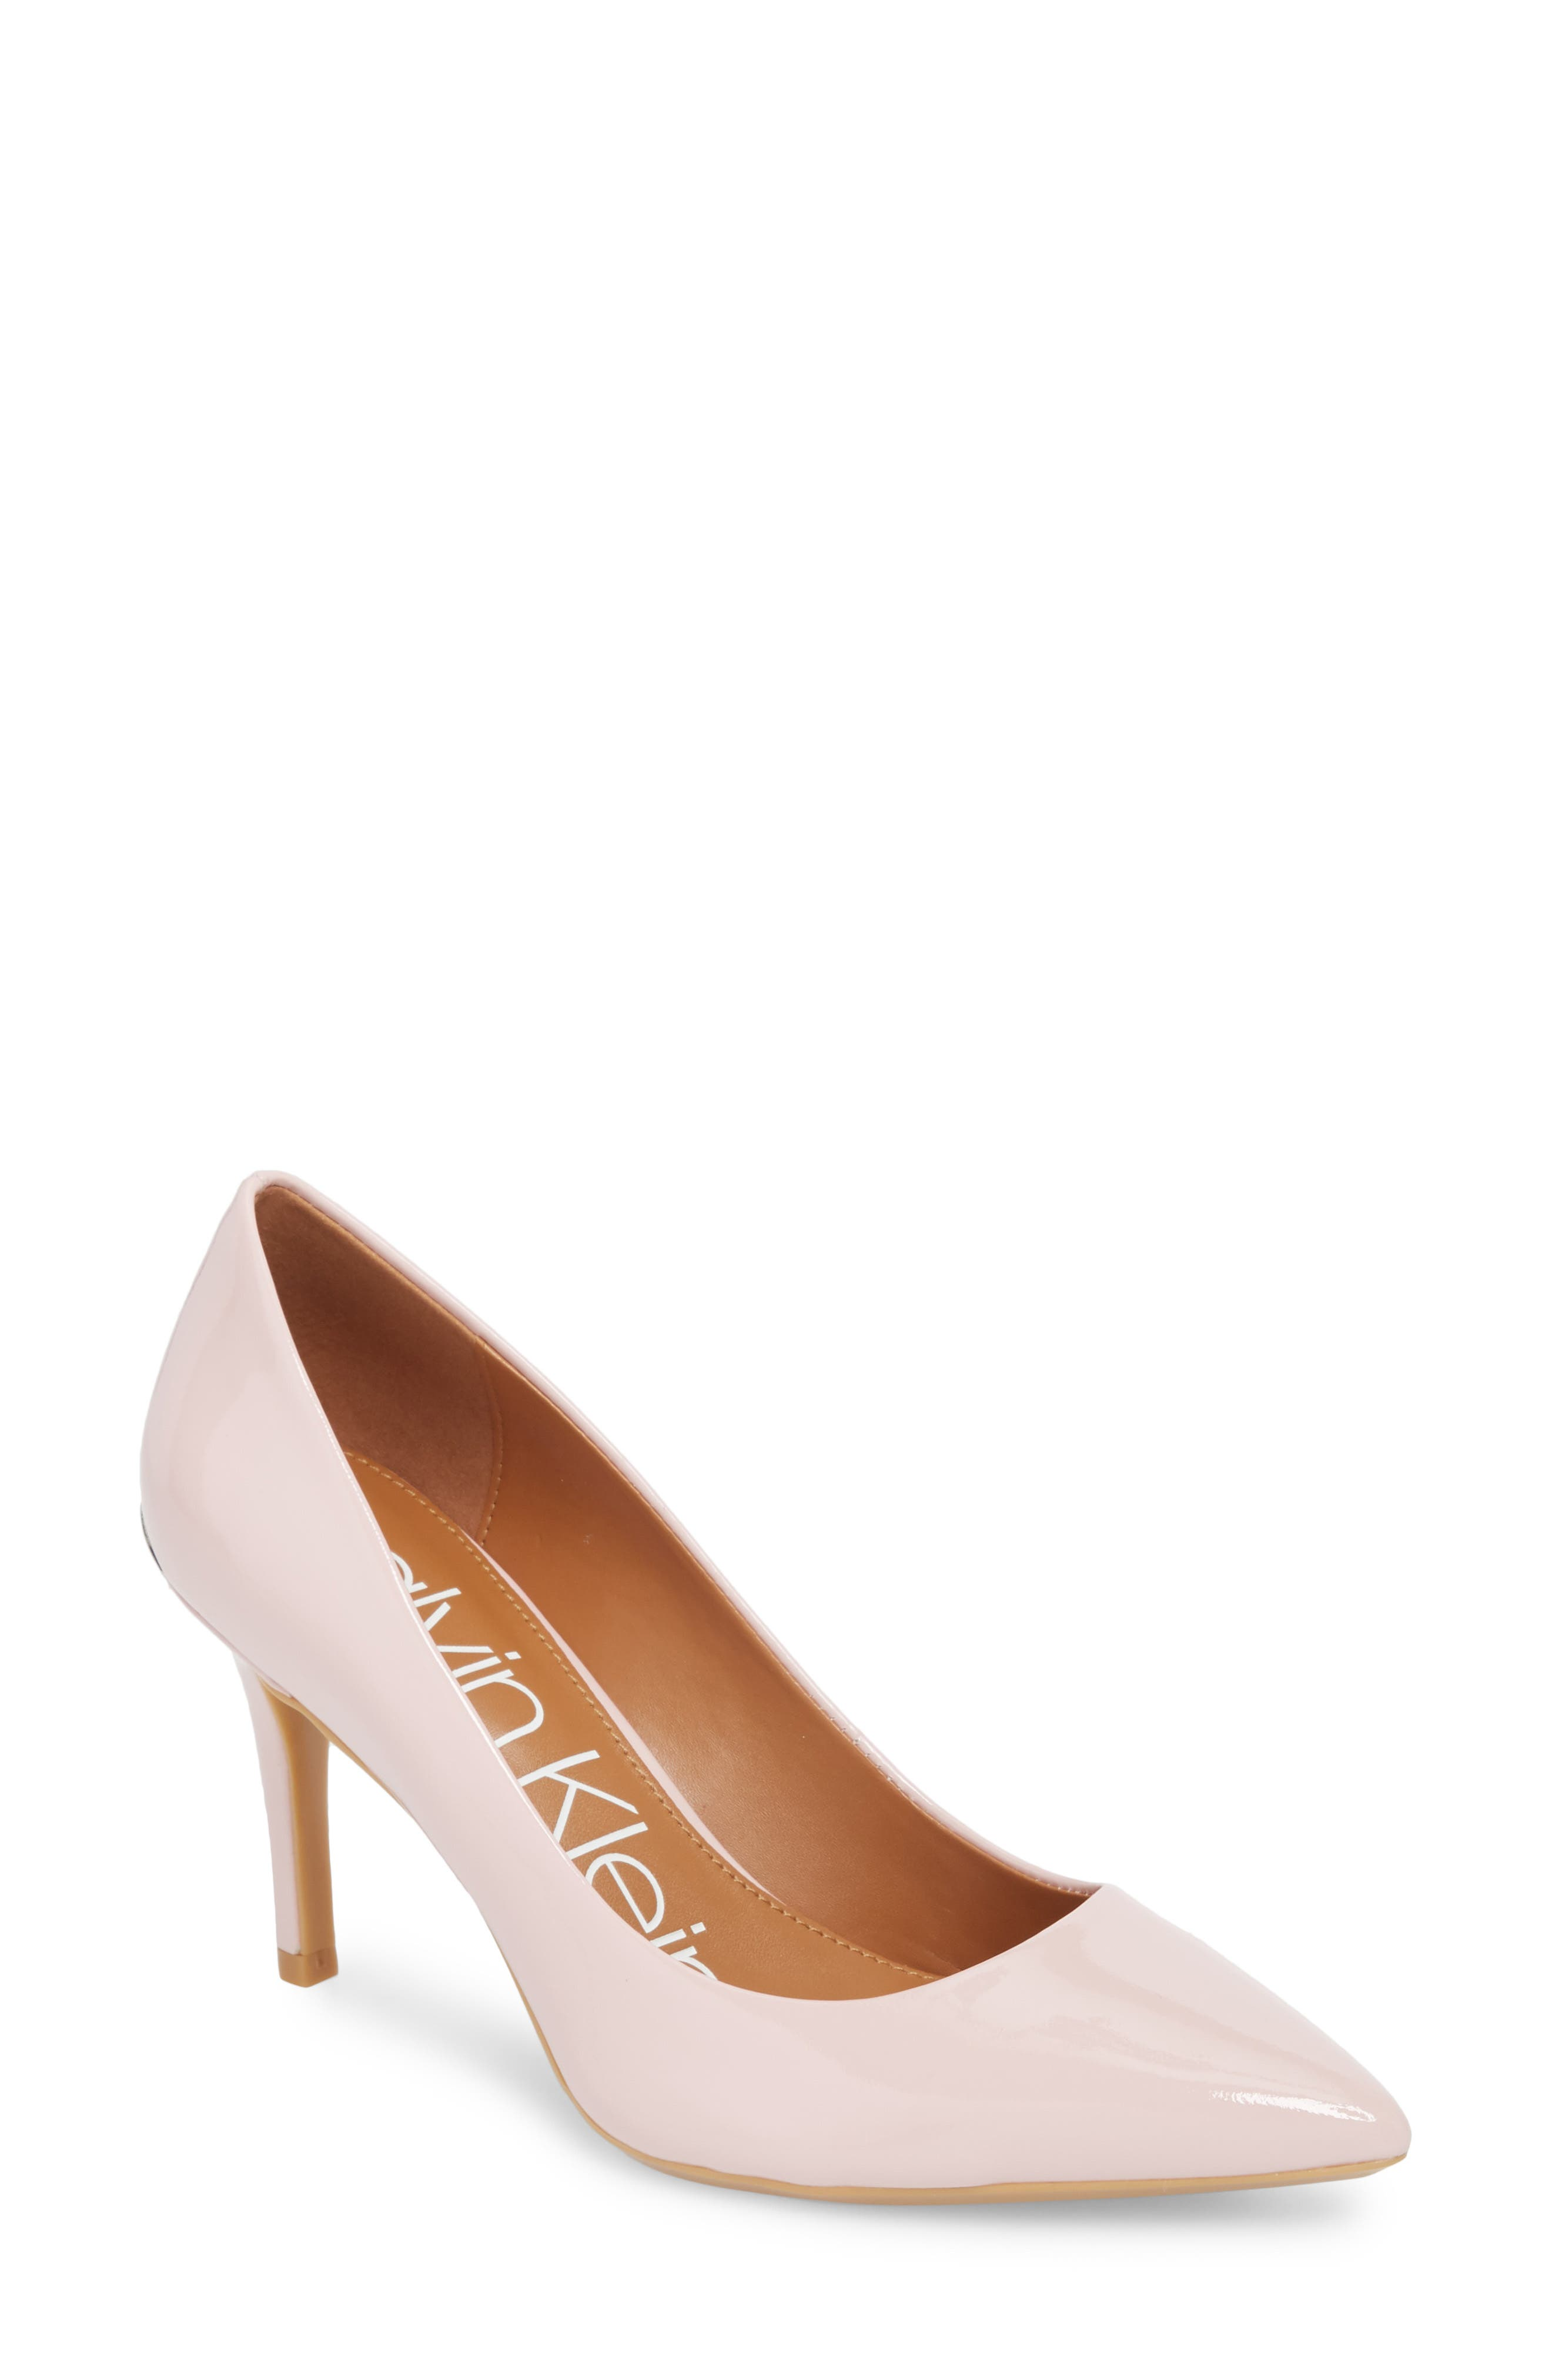 'Gayle' Pointy Toe Pump,                         Main,                         color, Petal Pink Leather